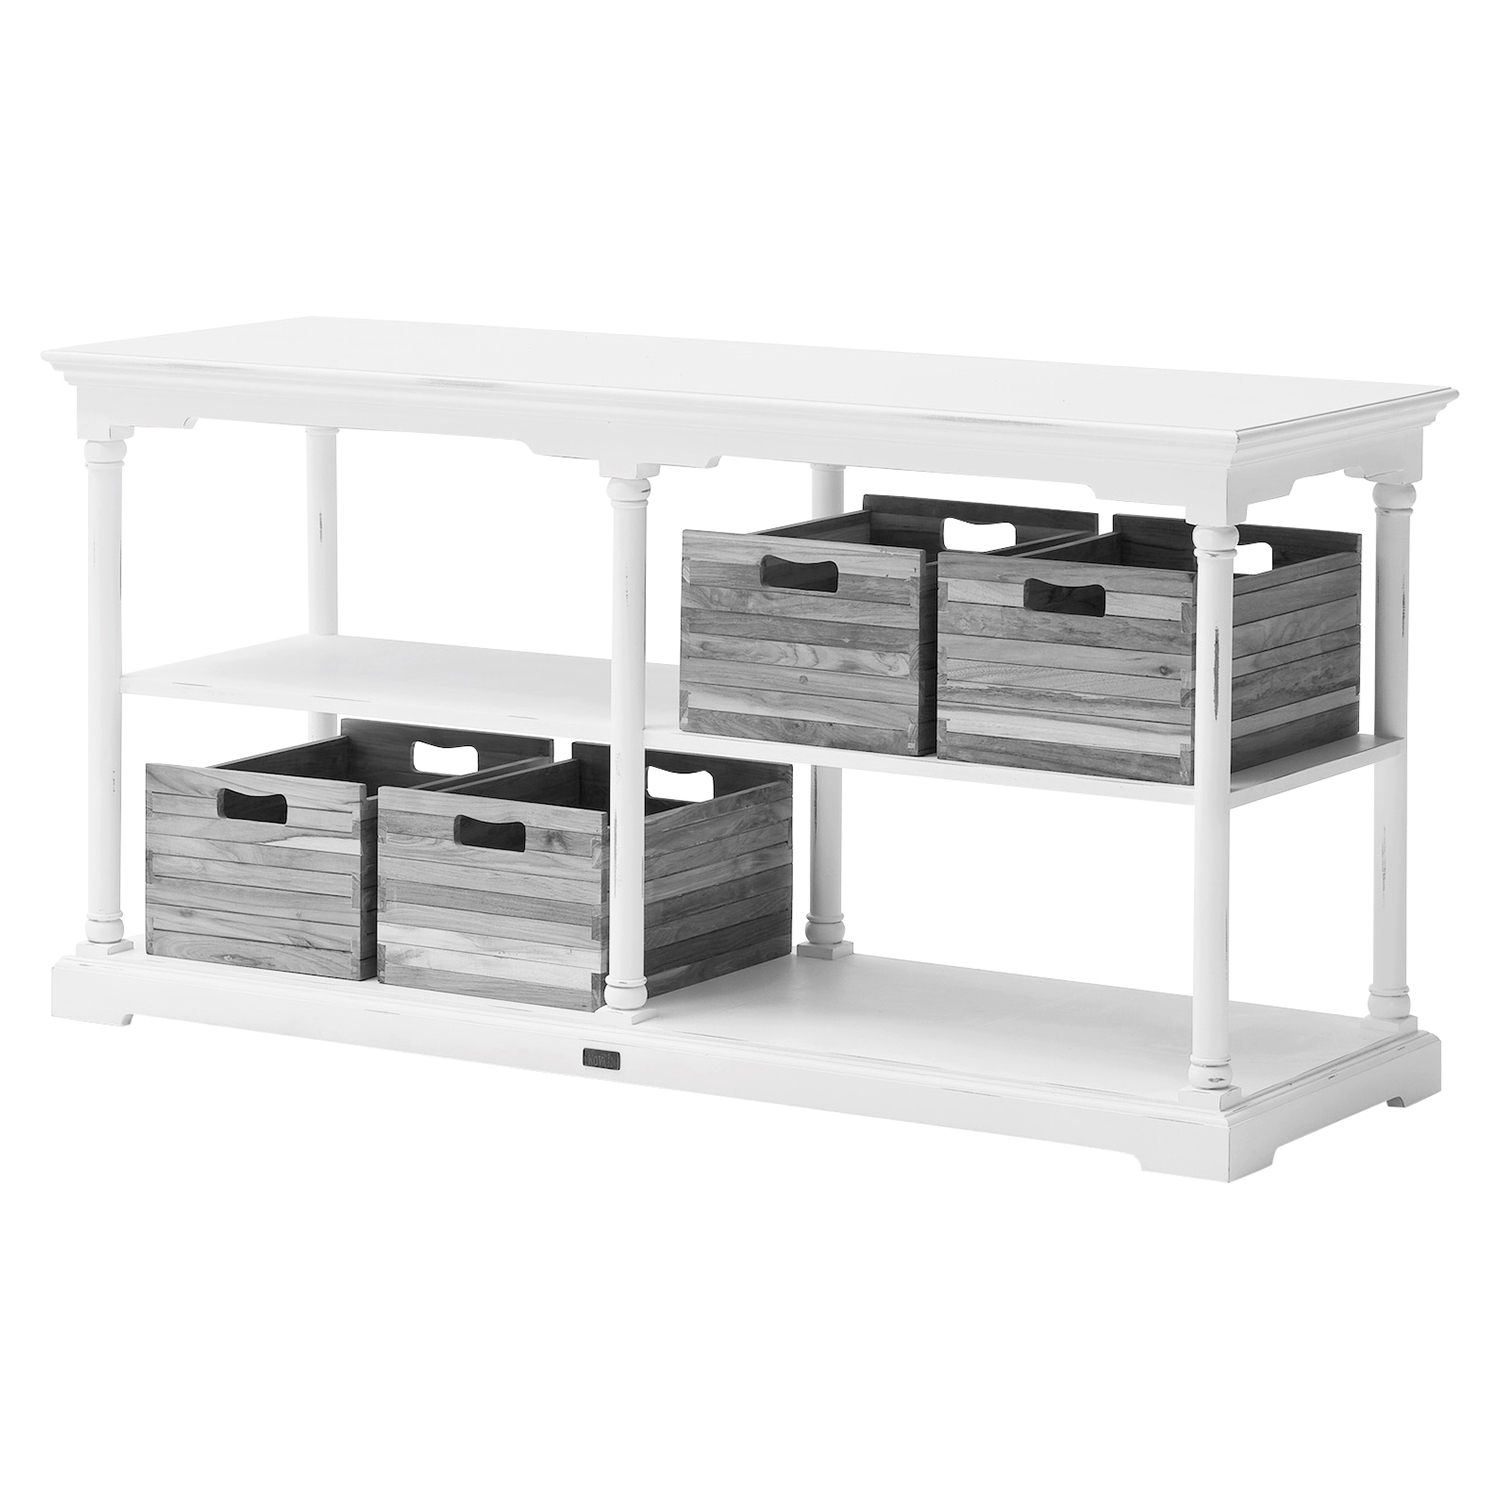 Bordeaux Medium Kitchen Table - 4 Boxes, White Distressed - NSOLO-T786